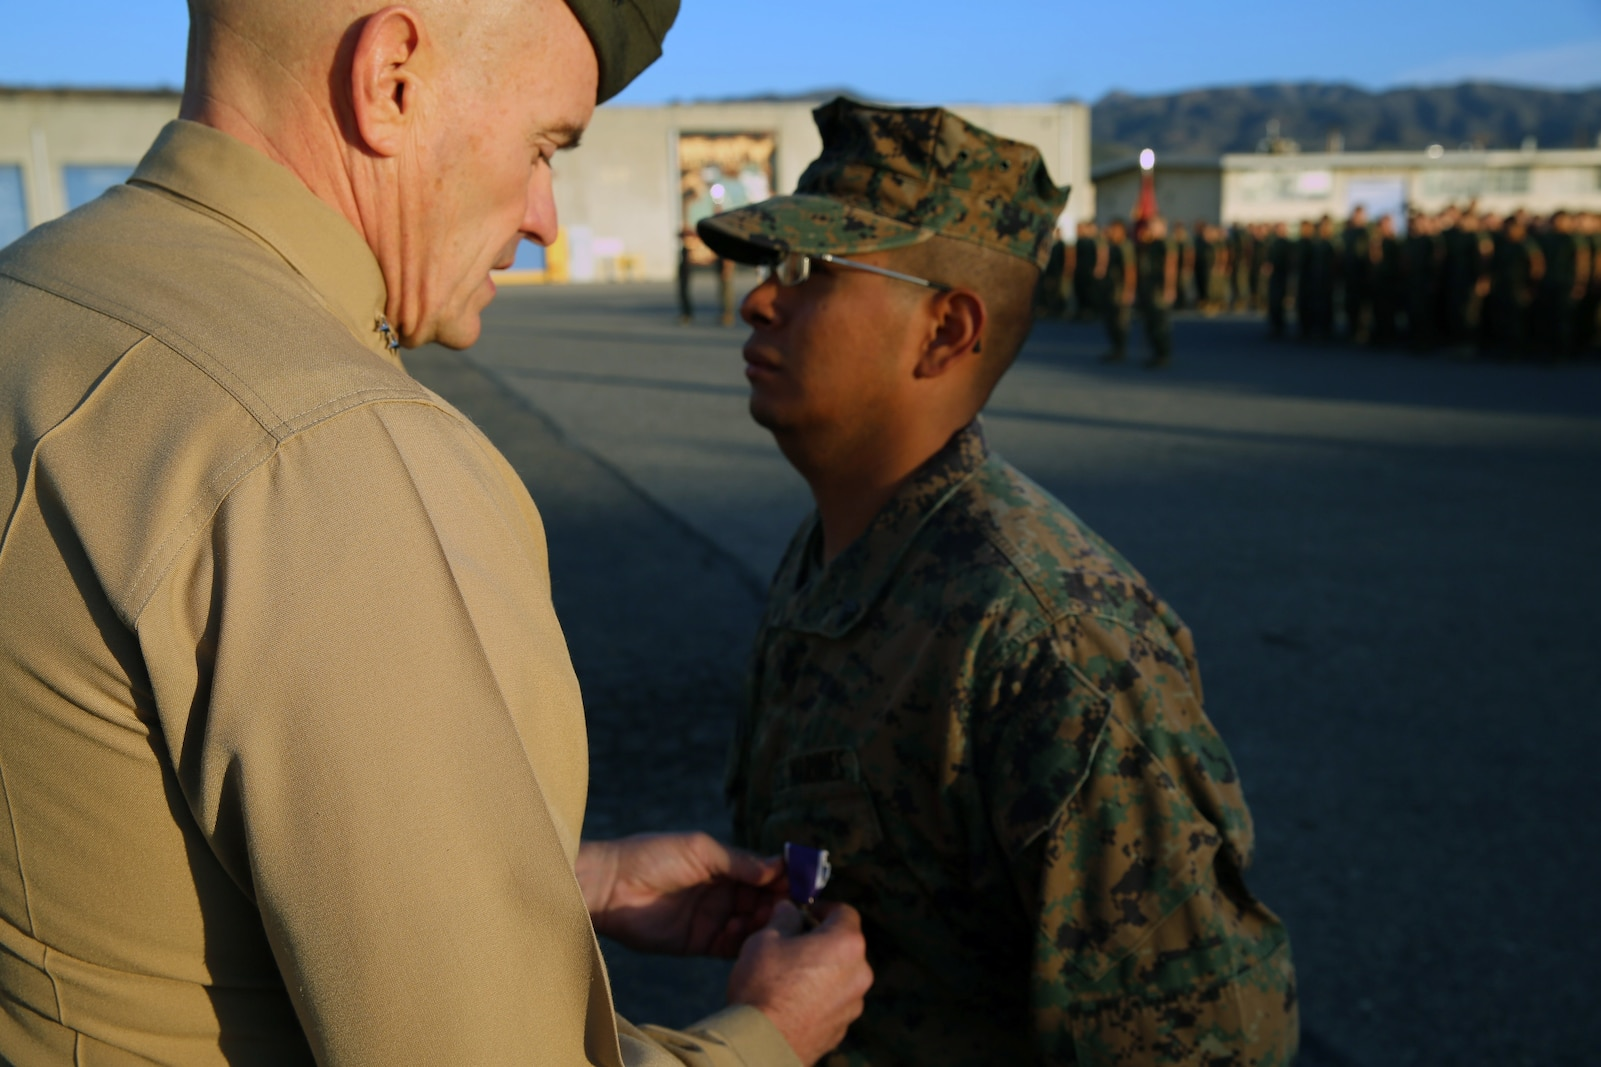 Corporal Ulises Zamoramartinez, an optics technician with 1st Maintenance Battalion, Combat Logistics Regiment 15, 1st Marine Logistics Group, recieves the Purple Heart Medal by Maj. Gen. Vincent Coglianese, commanding general 1st MLG, during an award ceremony aboard Camp Pendleton, California Dec. 19, 2014. Zamoramartinez, a 31-year-old native of Yakima, Washington, received the award for injuries received while deployed in Helmand province, Afghanistan during a six-month tour with Georgian Liaison Team 10, Regional Command (Southwest). (Marine Corps photo by Cpl. Cody Haas/ Released)